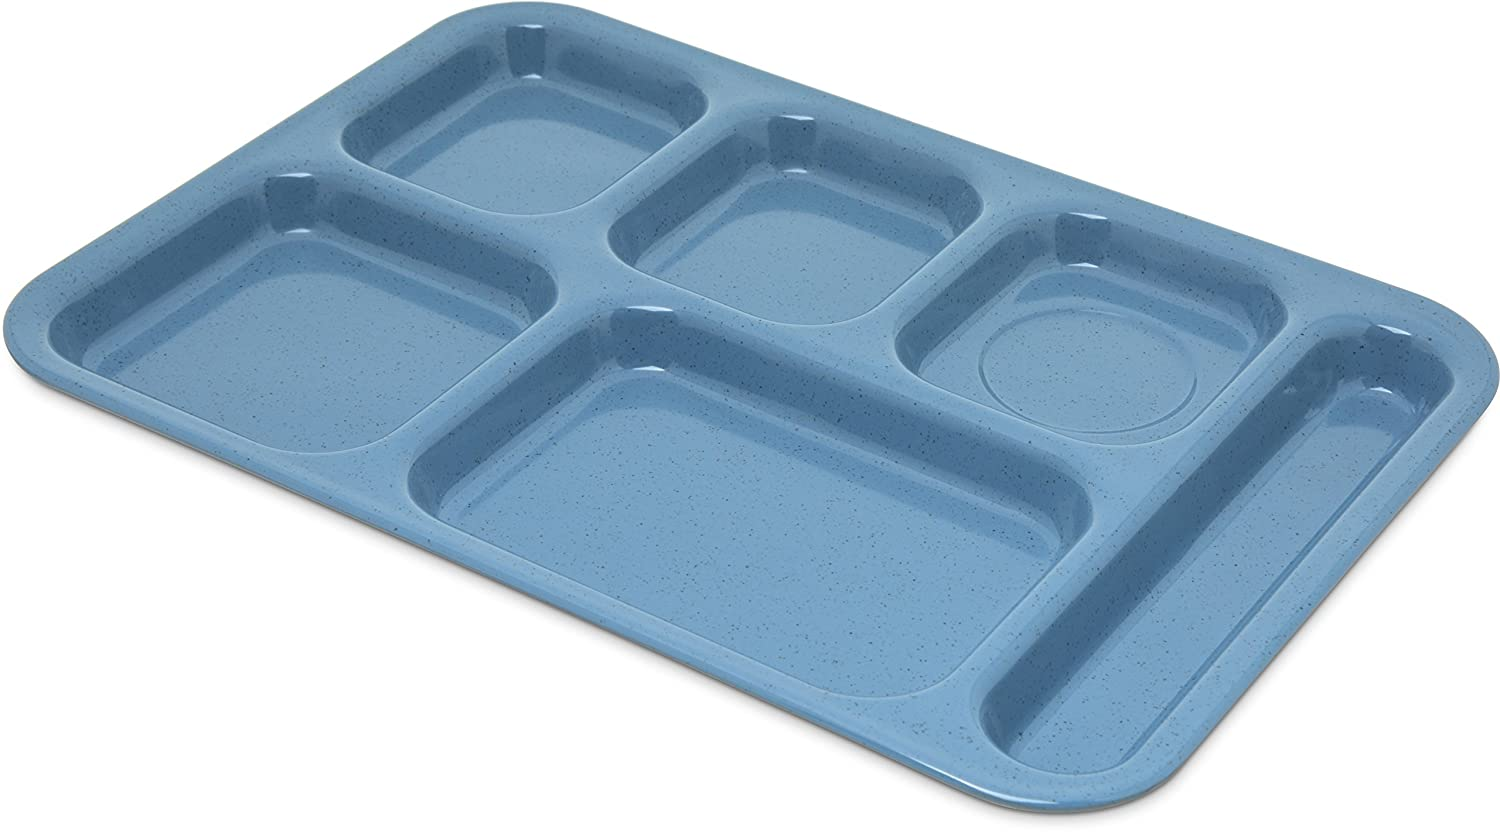 "Carlisle 4398992 Right-Hand Heavy Weight 6-Compartment Cafeteria/Fast Food Tray, 10"" x 14"", Sandshade"